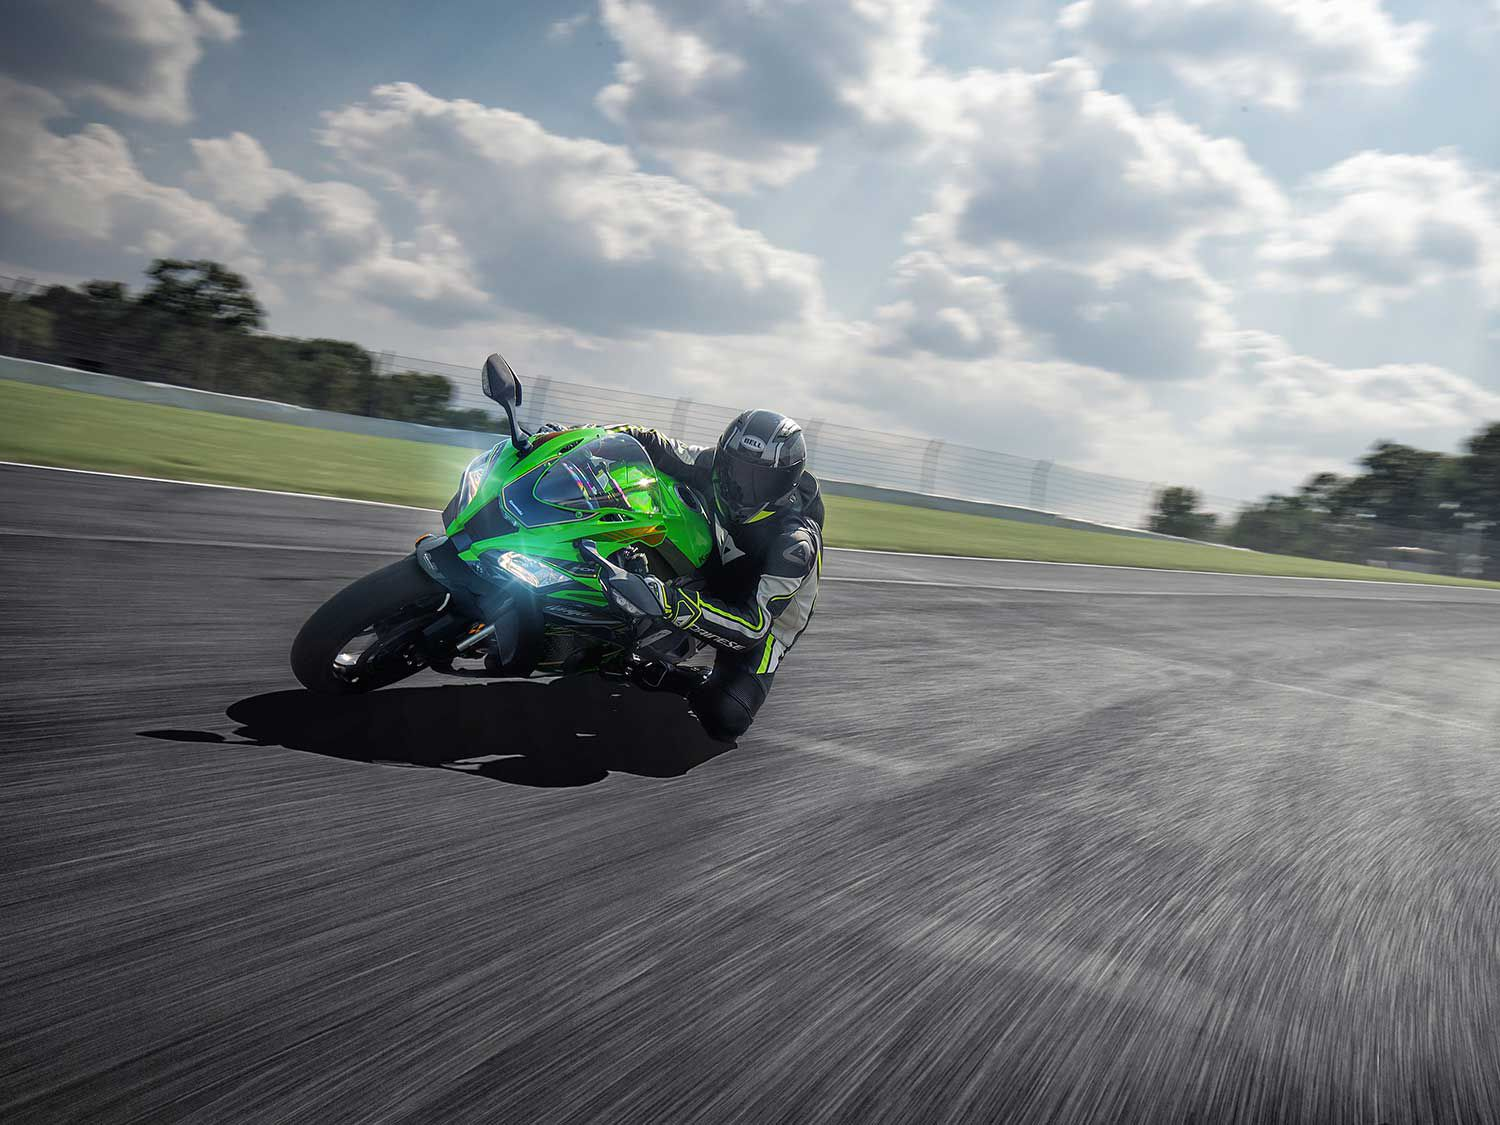 The 2020 Ninja ZX-10R engine is mounted in the frame so that it raises the center of gravity and places extra weight on the front end. This weight distribution combined with the precise rake angle improves the bike's ability to be flicked from side to side.